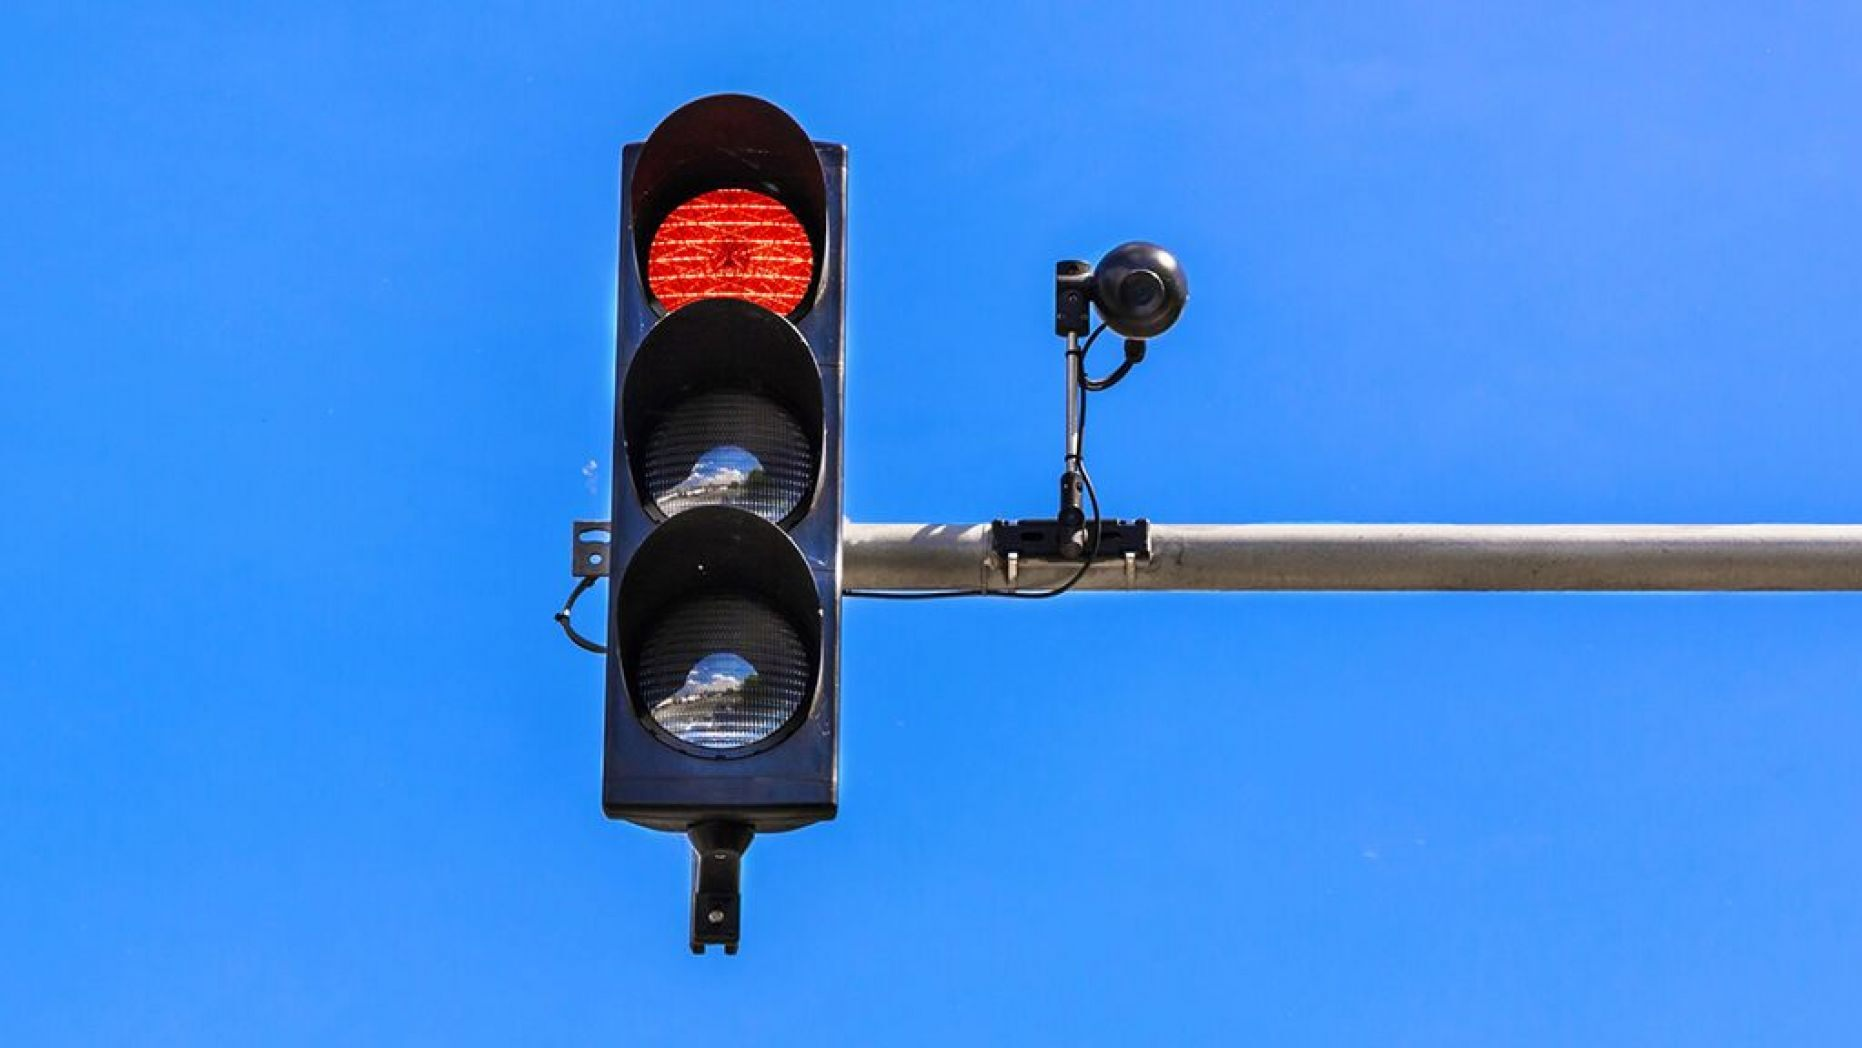 STOCK - A traffic light and a surveillance camera.